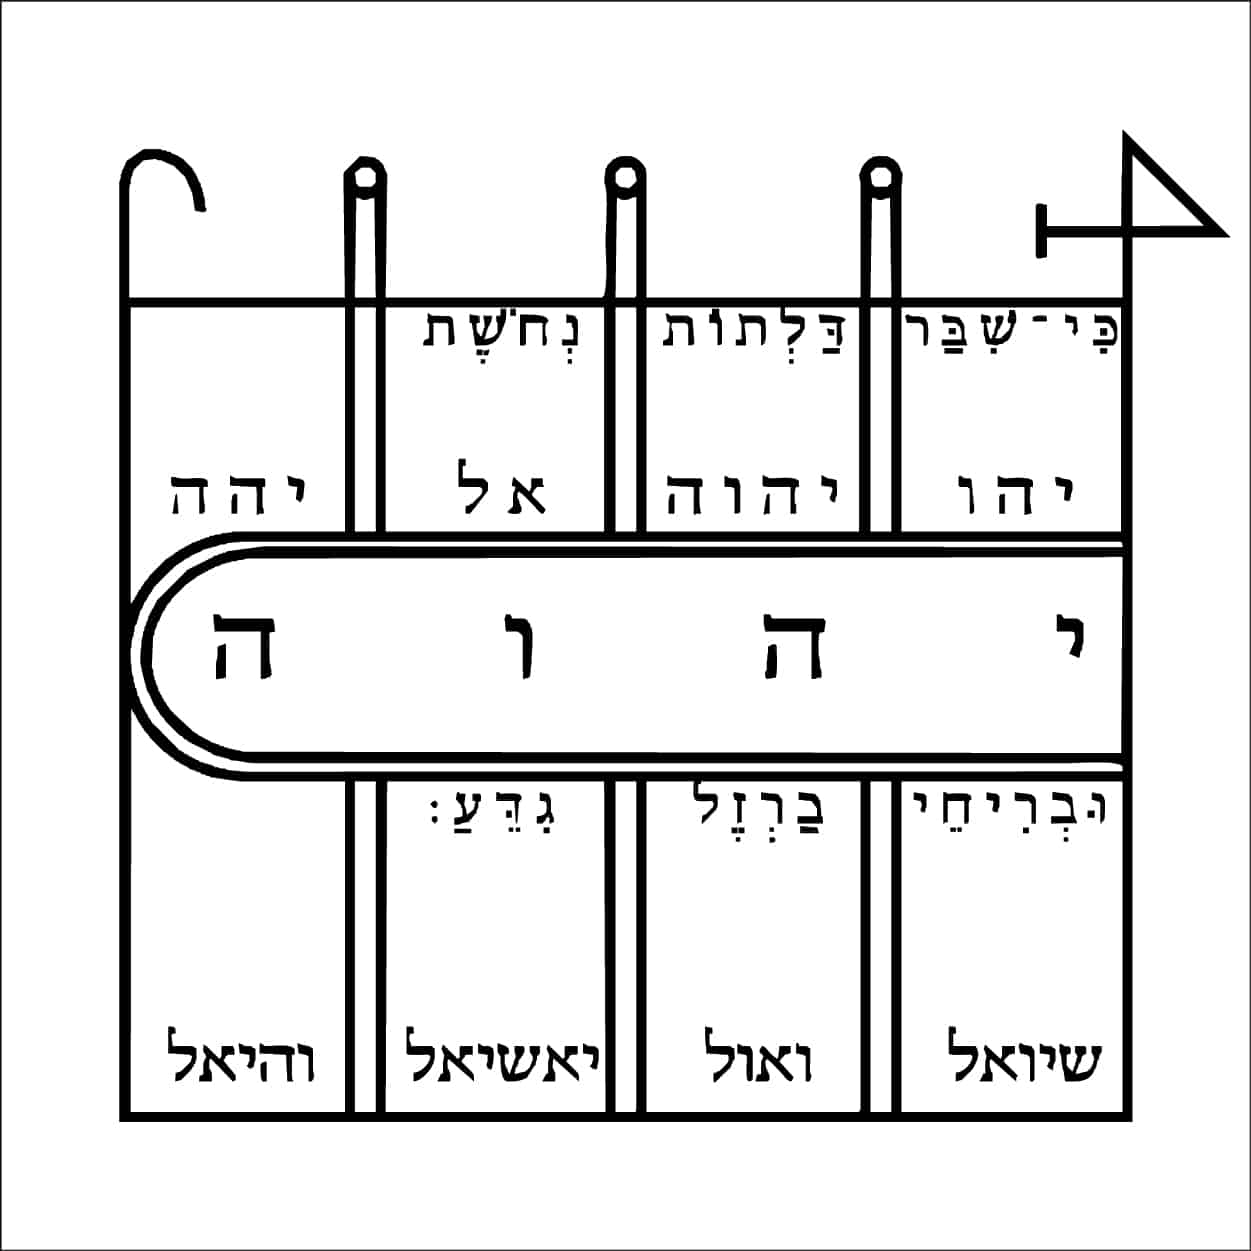 King Solomon's Paths Clearing Seals